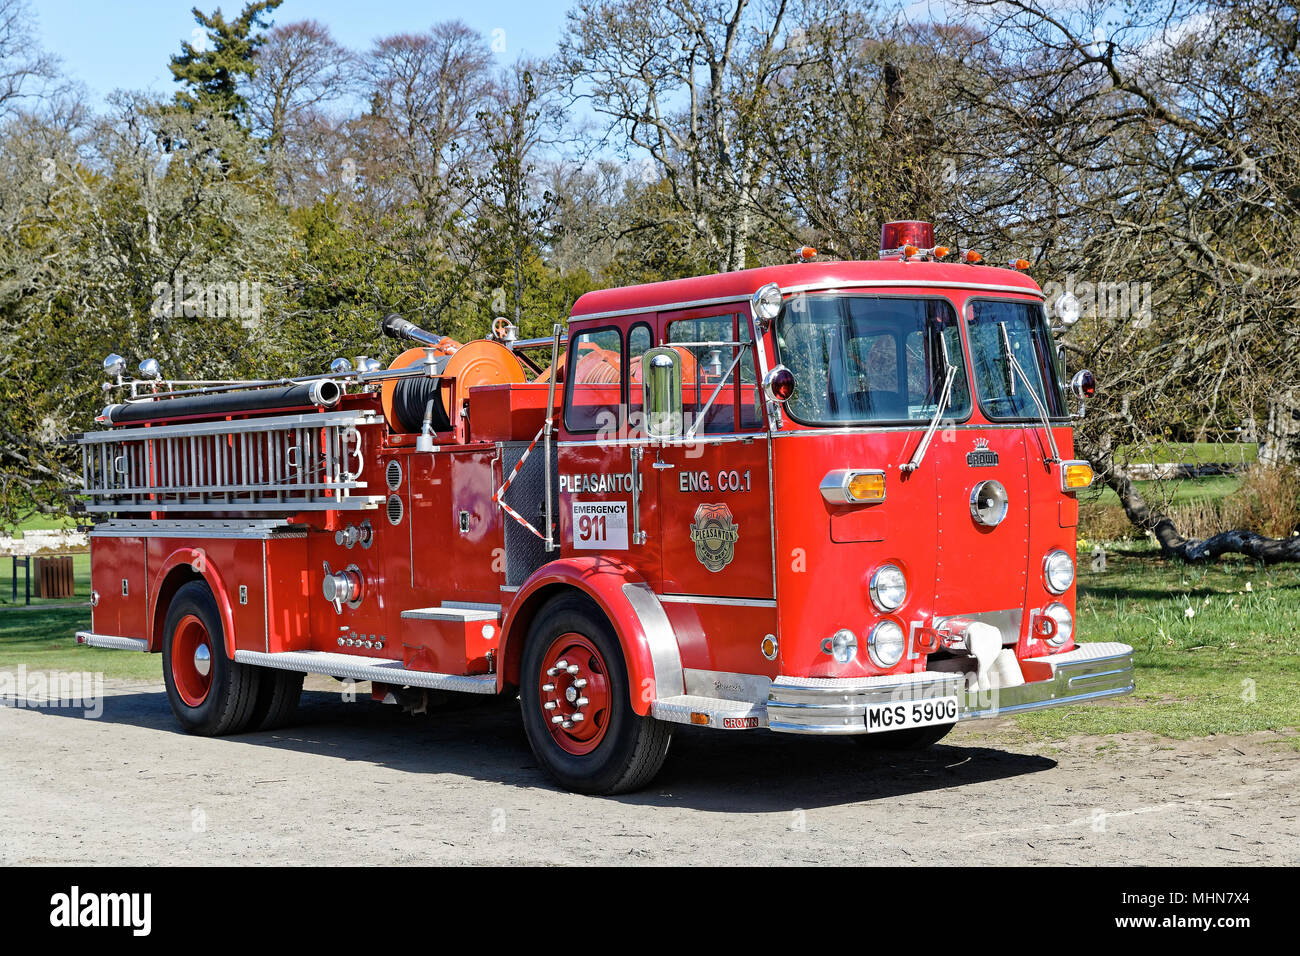 supercoach wiring diagram best wiring librarypleasanton fire department  adwi crown coach corporation fire appliance gifted to